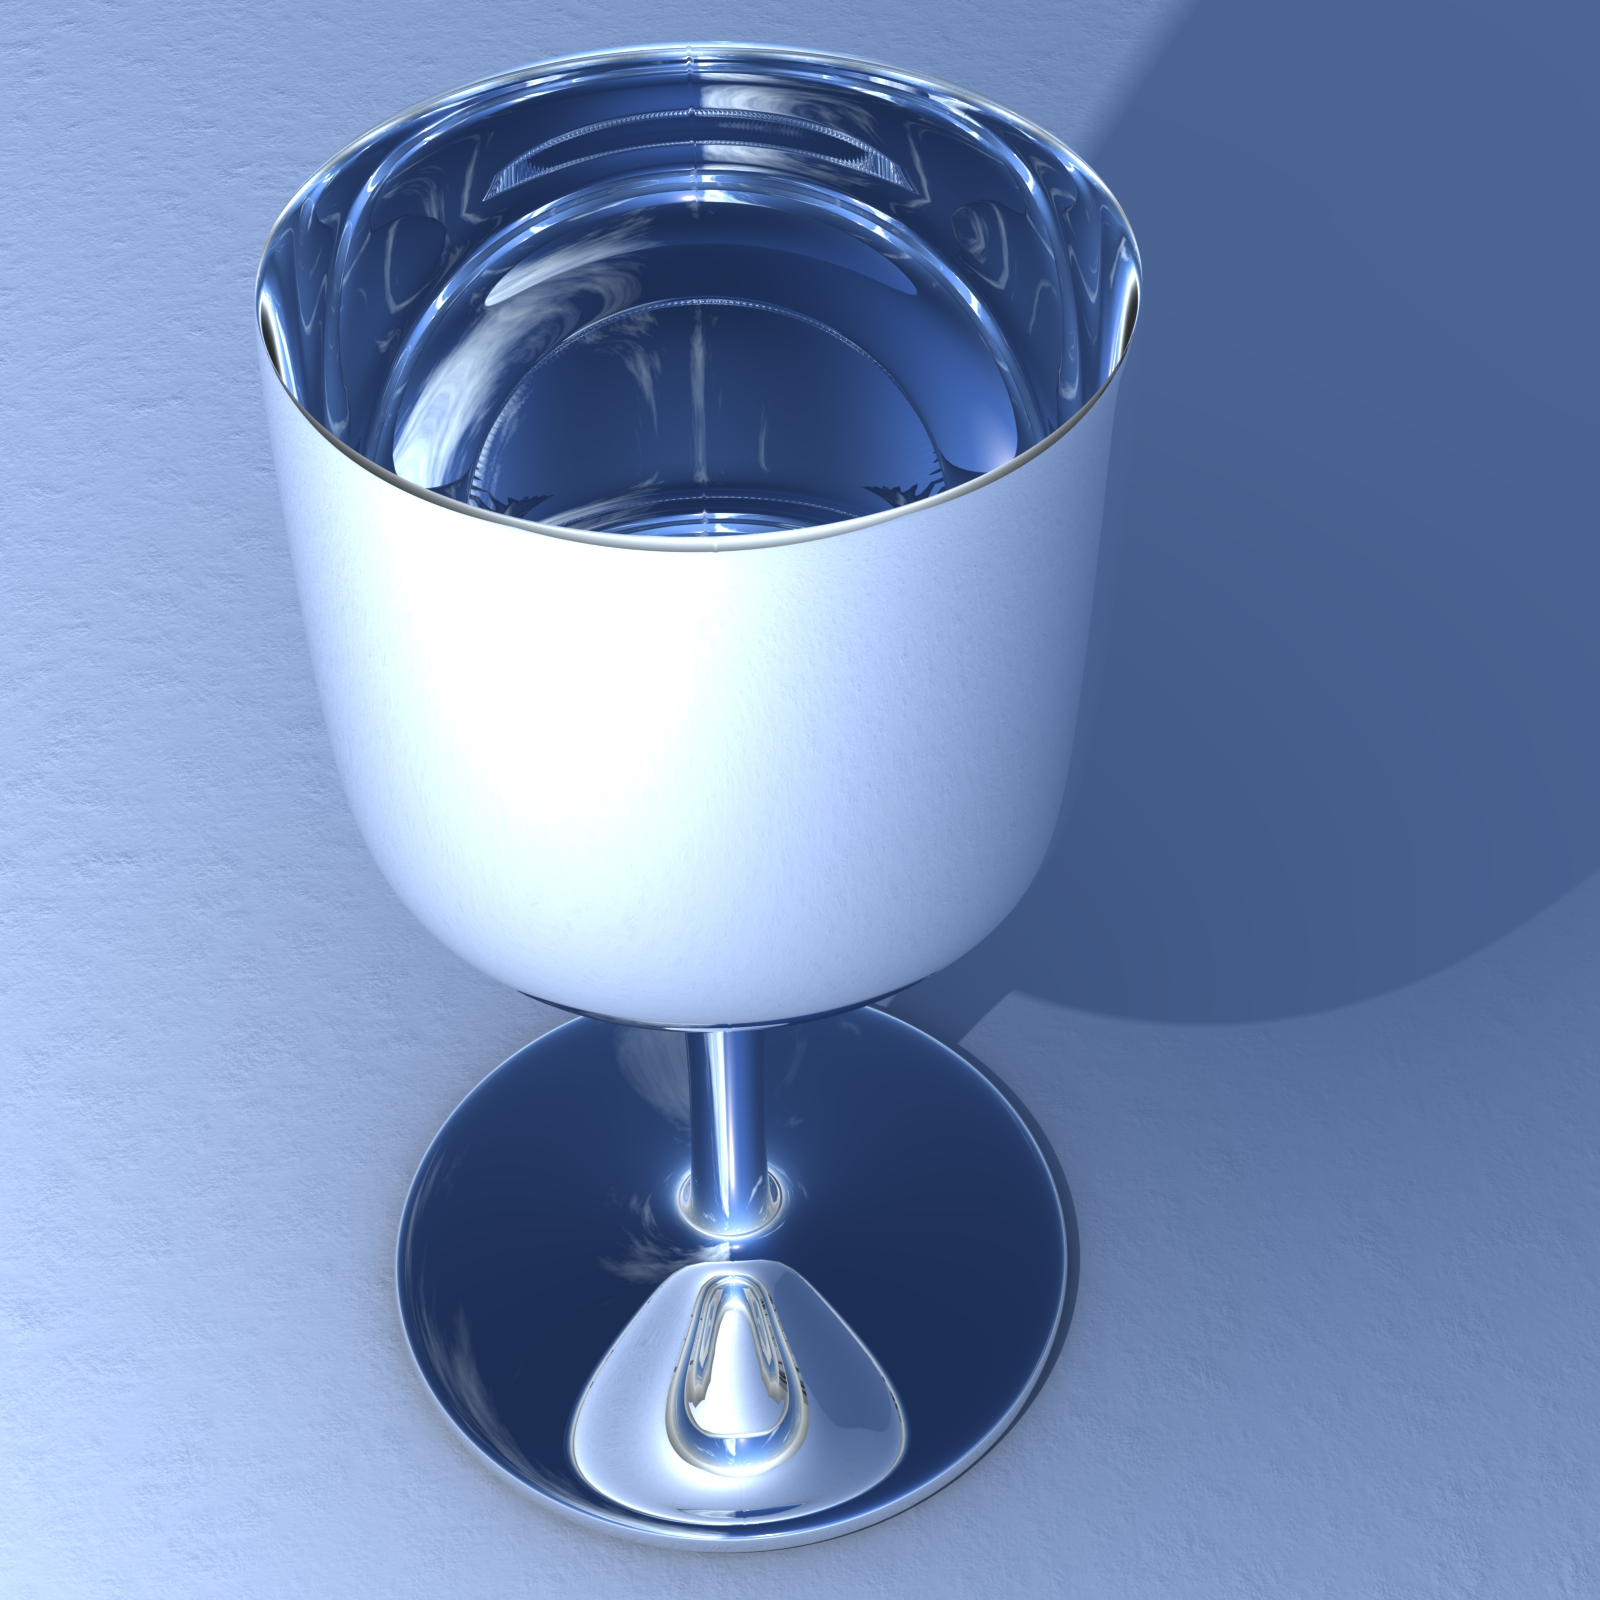 Goblet For A King